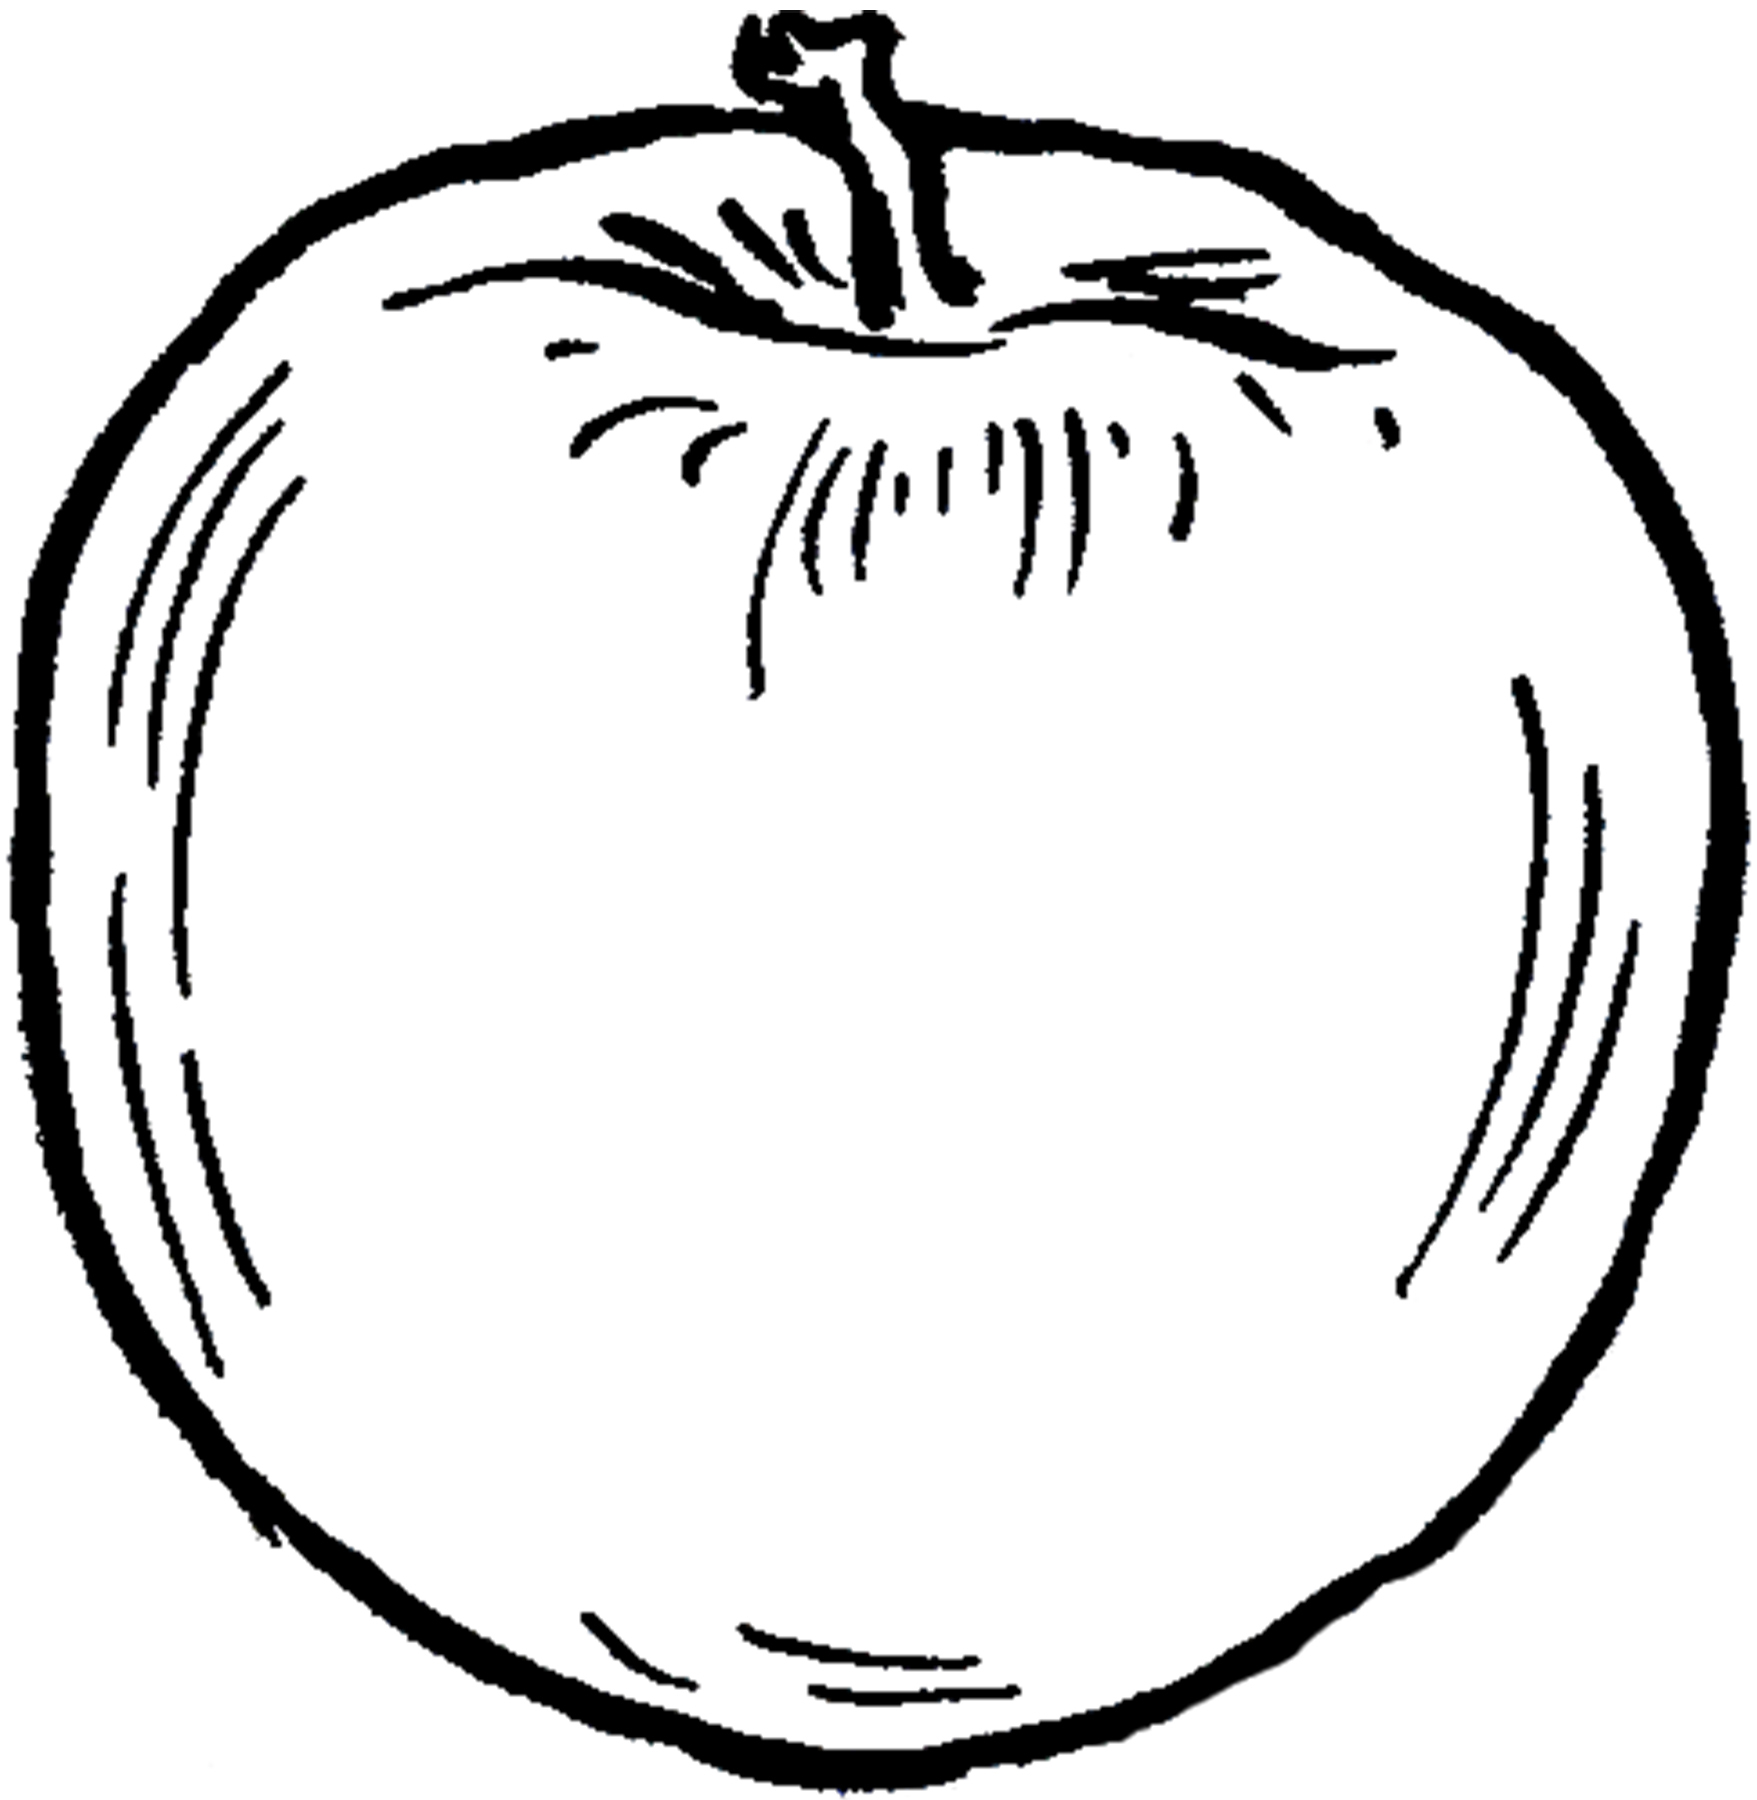 Line Art Of Apple : Vintage apple line drawing image the graphics fairy